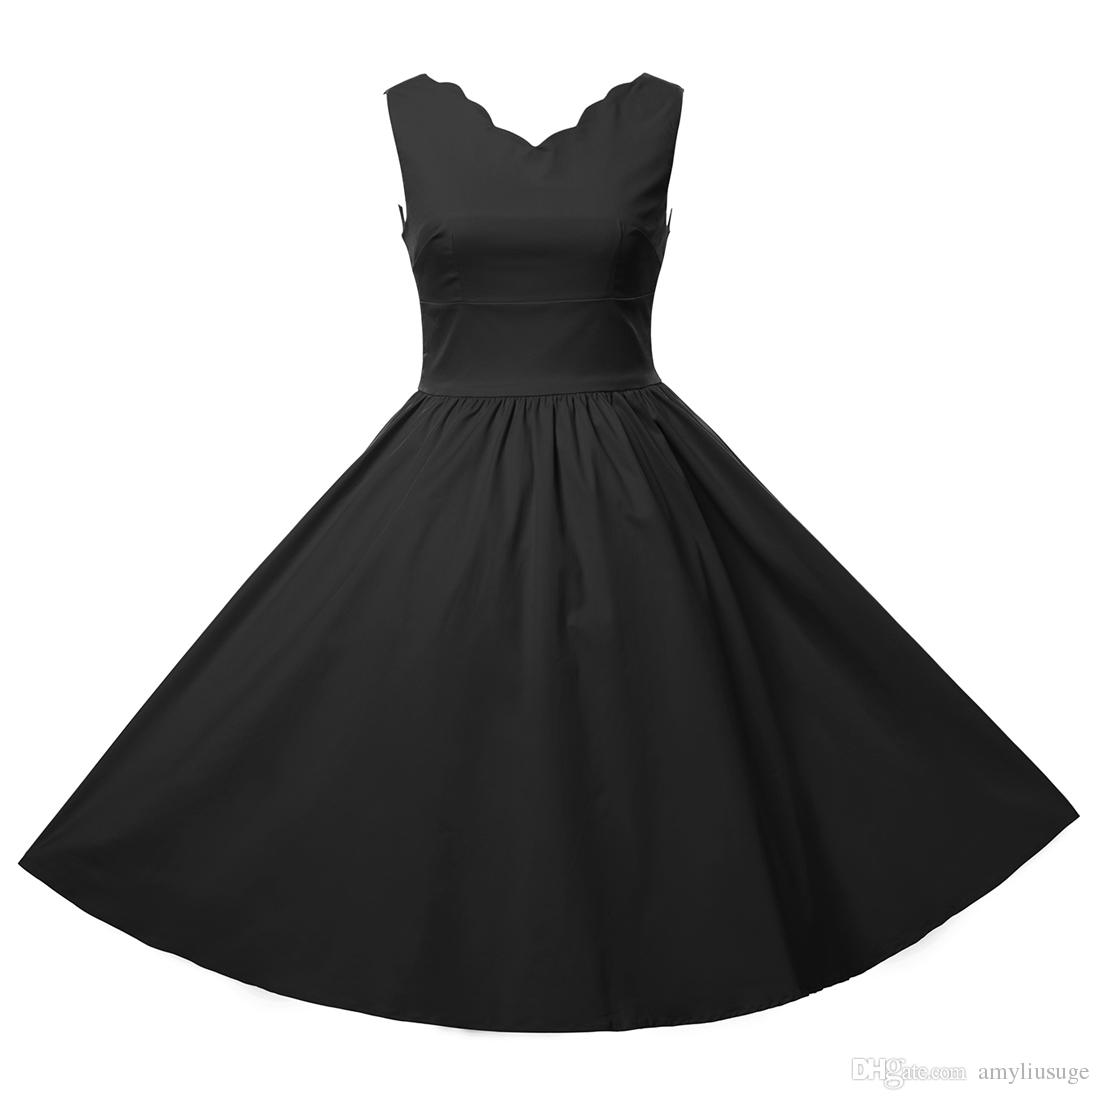 4261764340 Free shipping Women Vintage 1950S Wave Neck Swing Rockabilly Skaters Swing  Dresses Cocktail Party dress FYV083